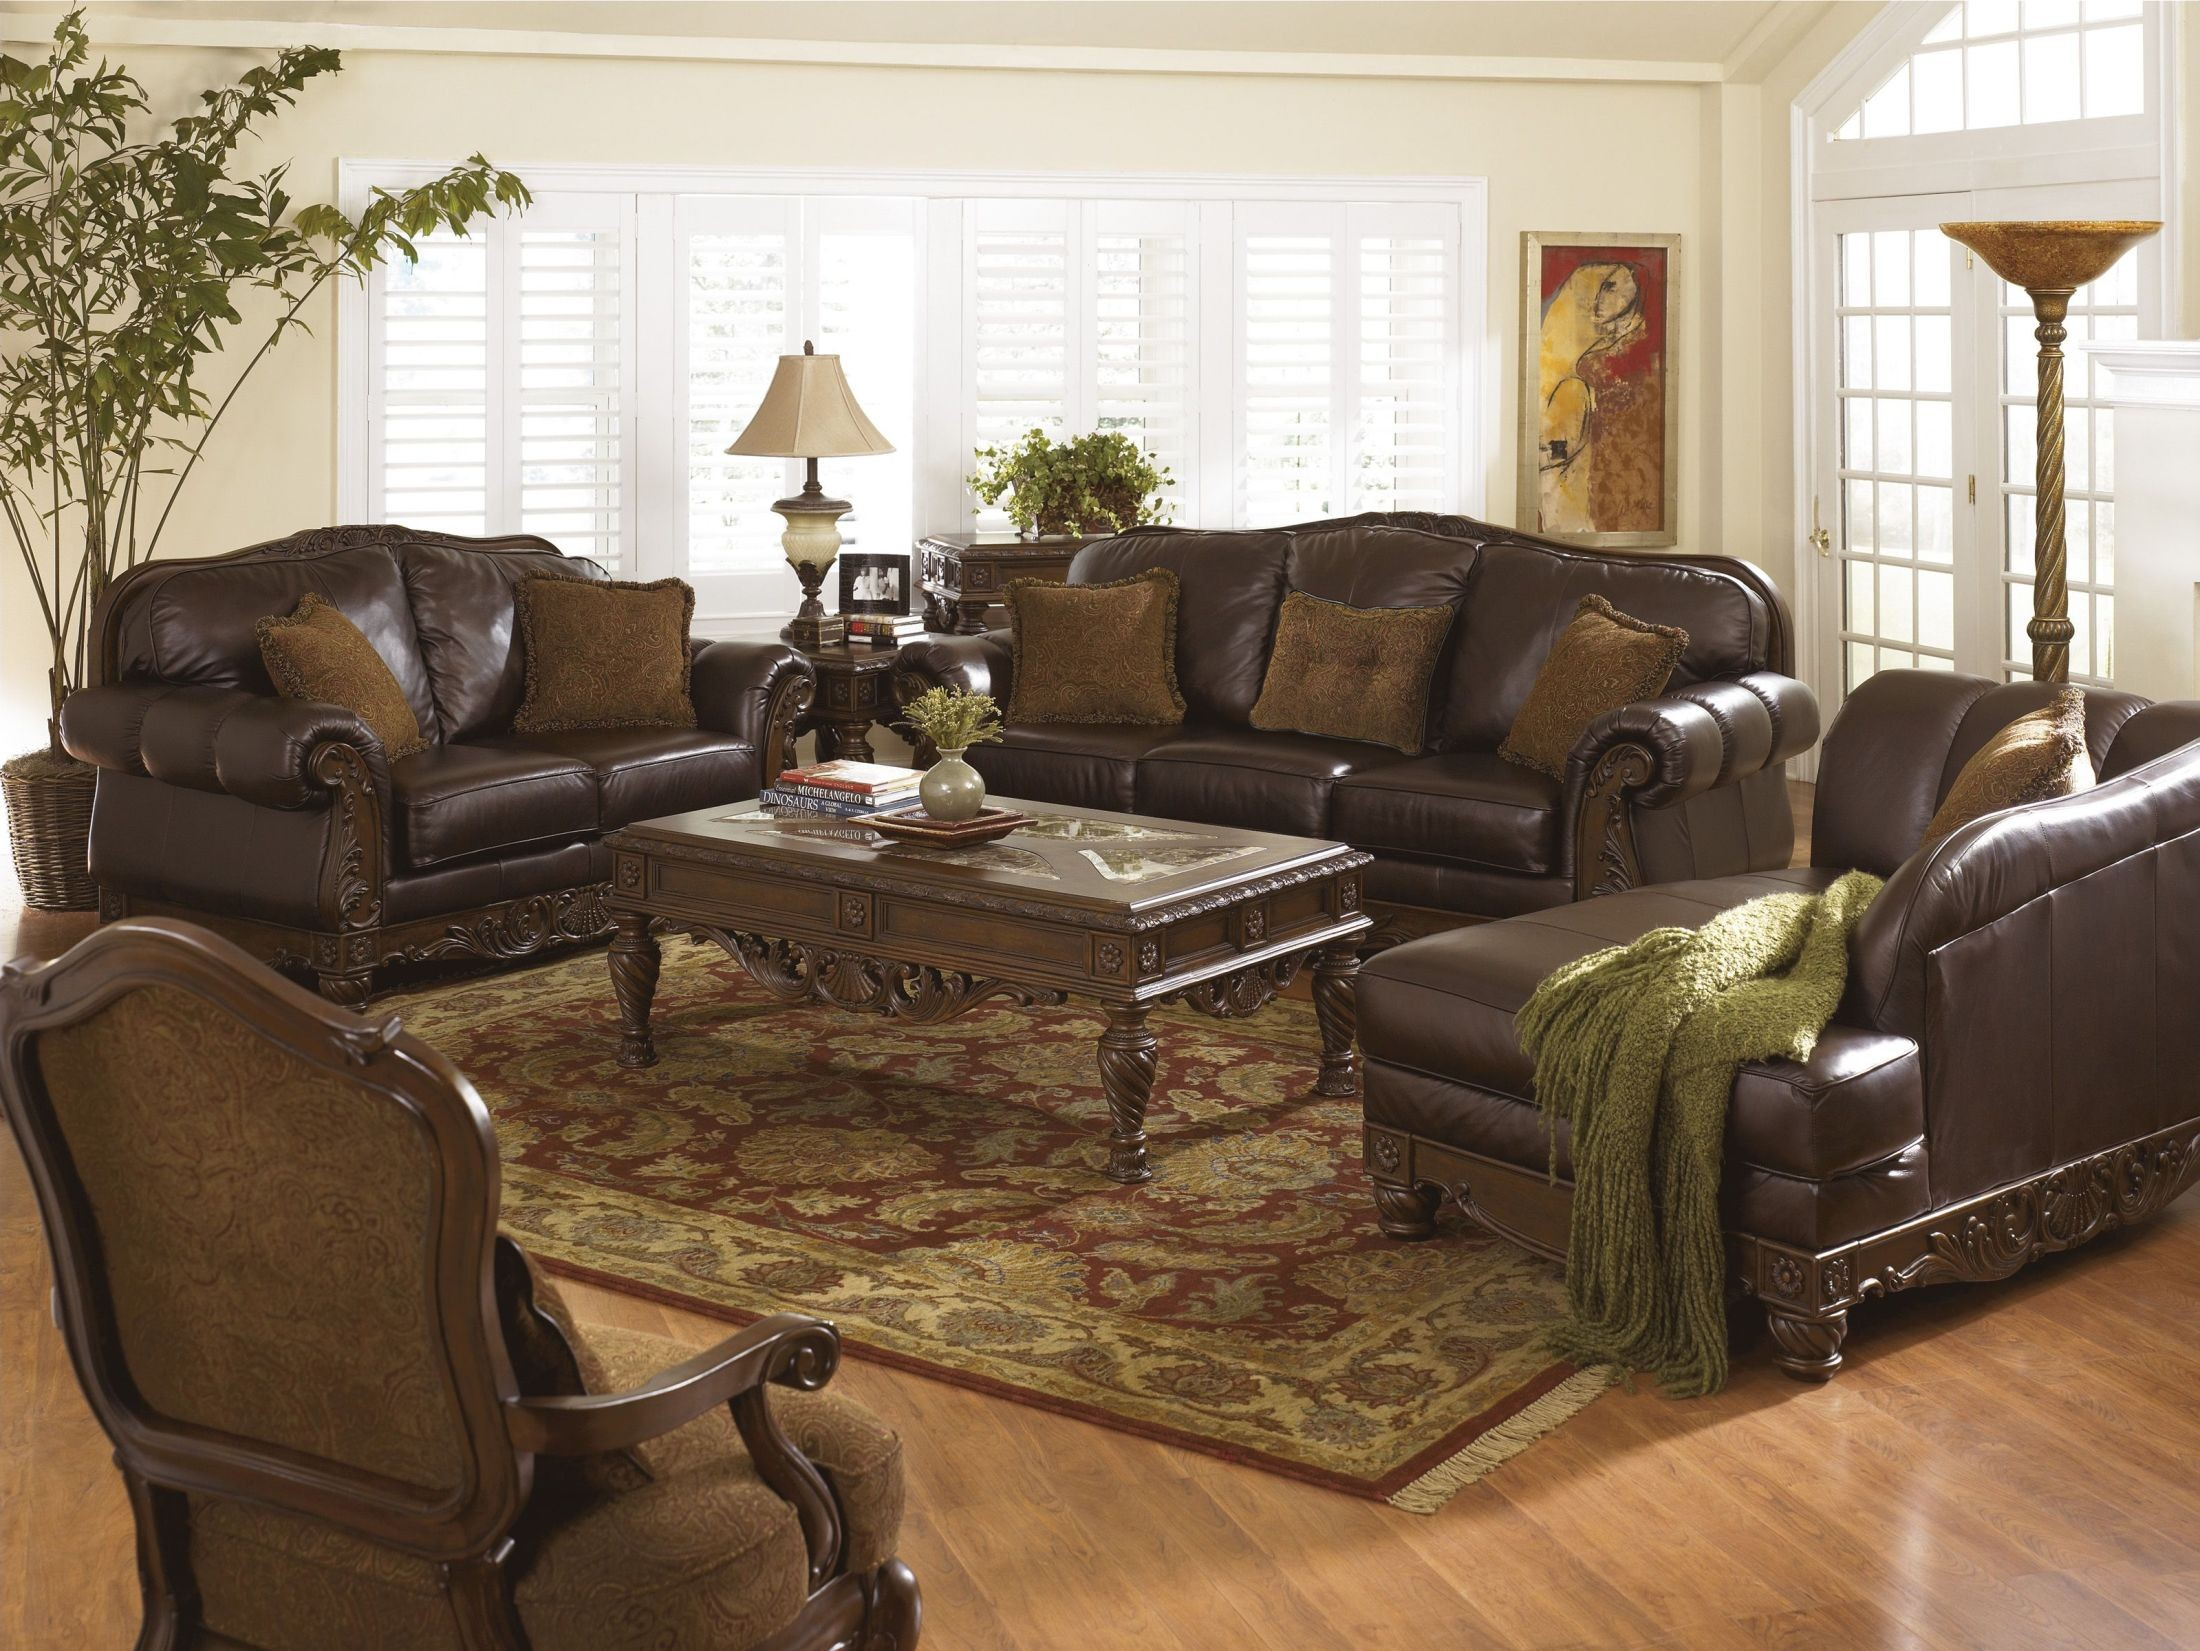 Beau North Shore Dark Brown Living Room Furniture From Millennium By Ashley. Old  Vs New   Buying Furniture Online. 2296278